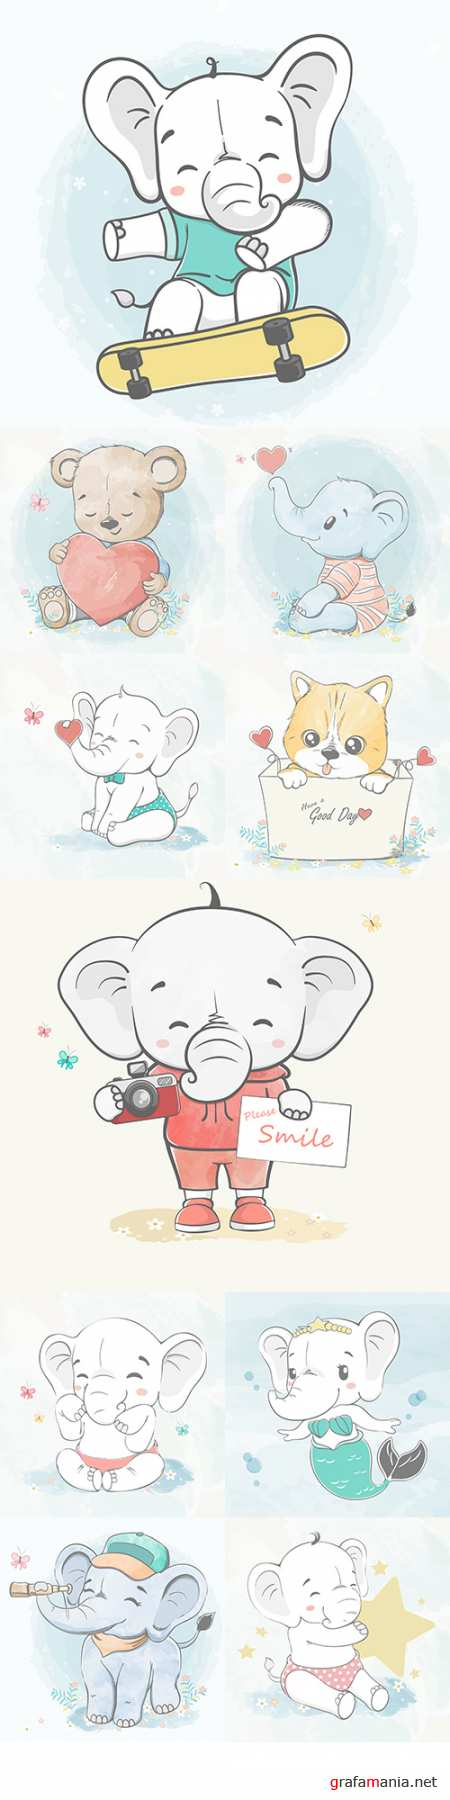 Cute elephant and friends cartoon watercolor